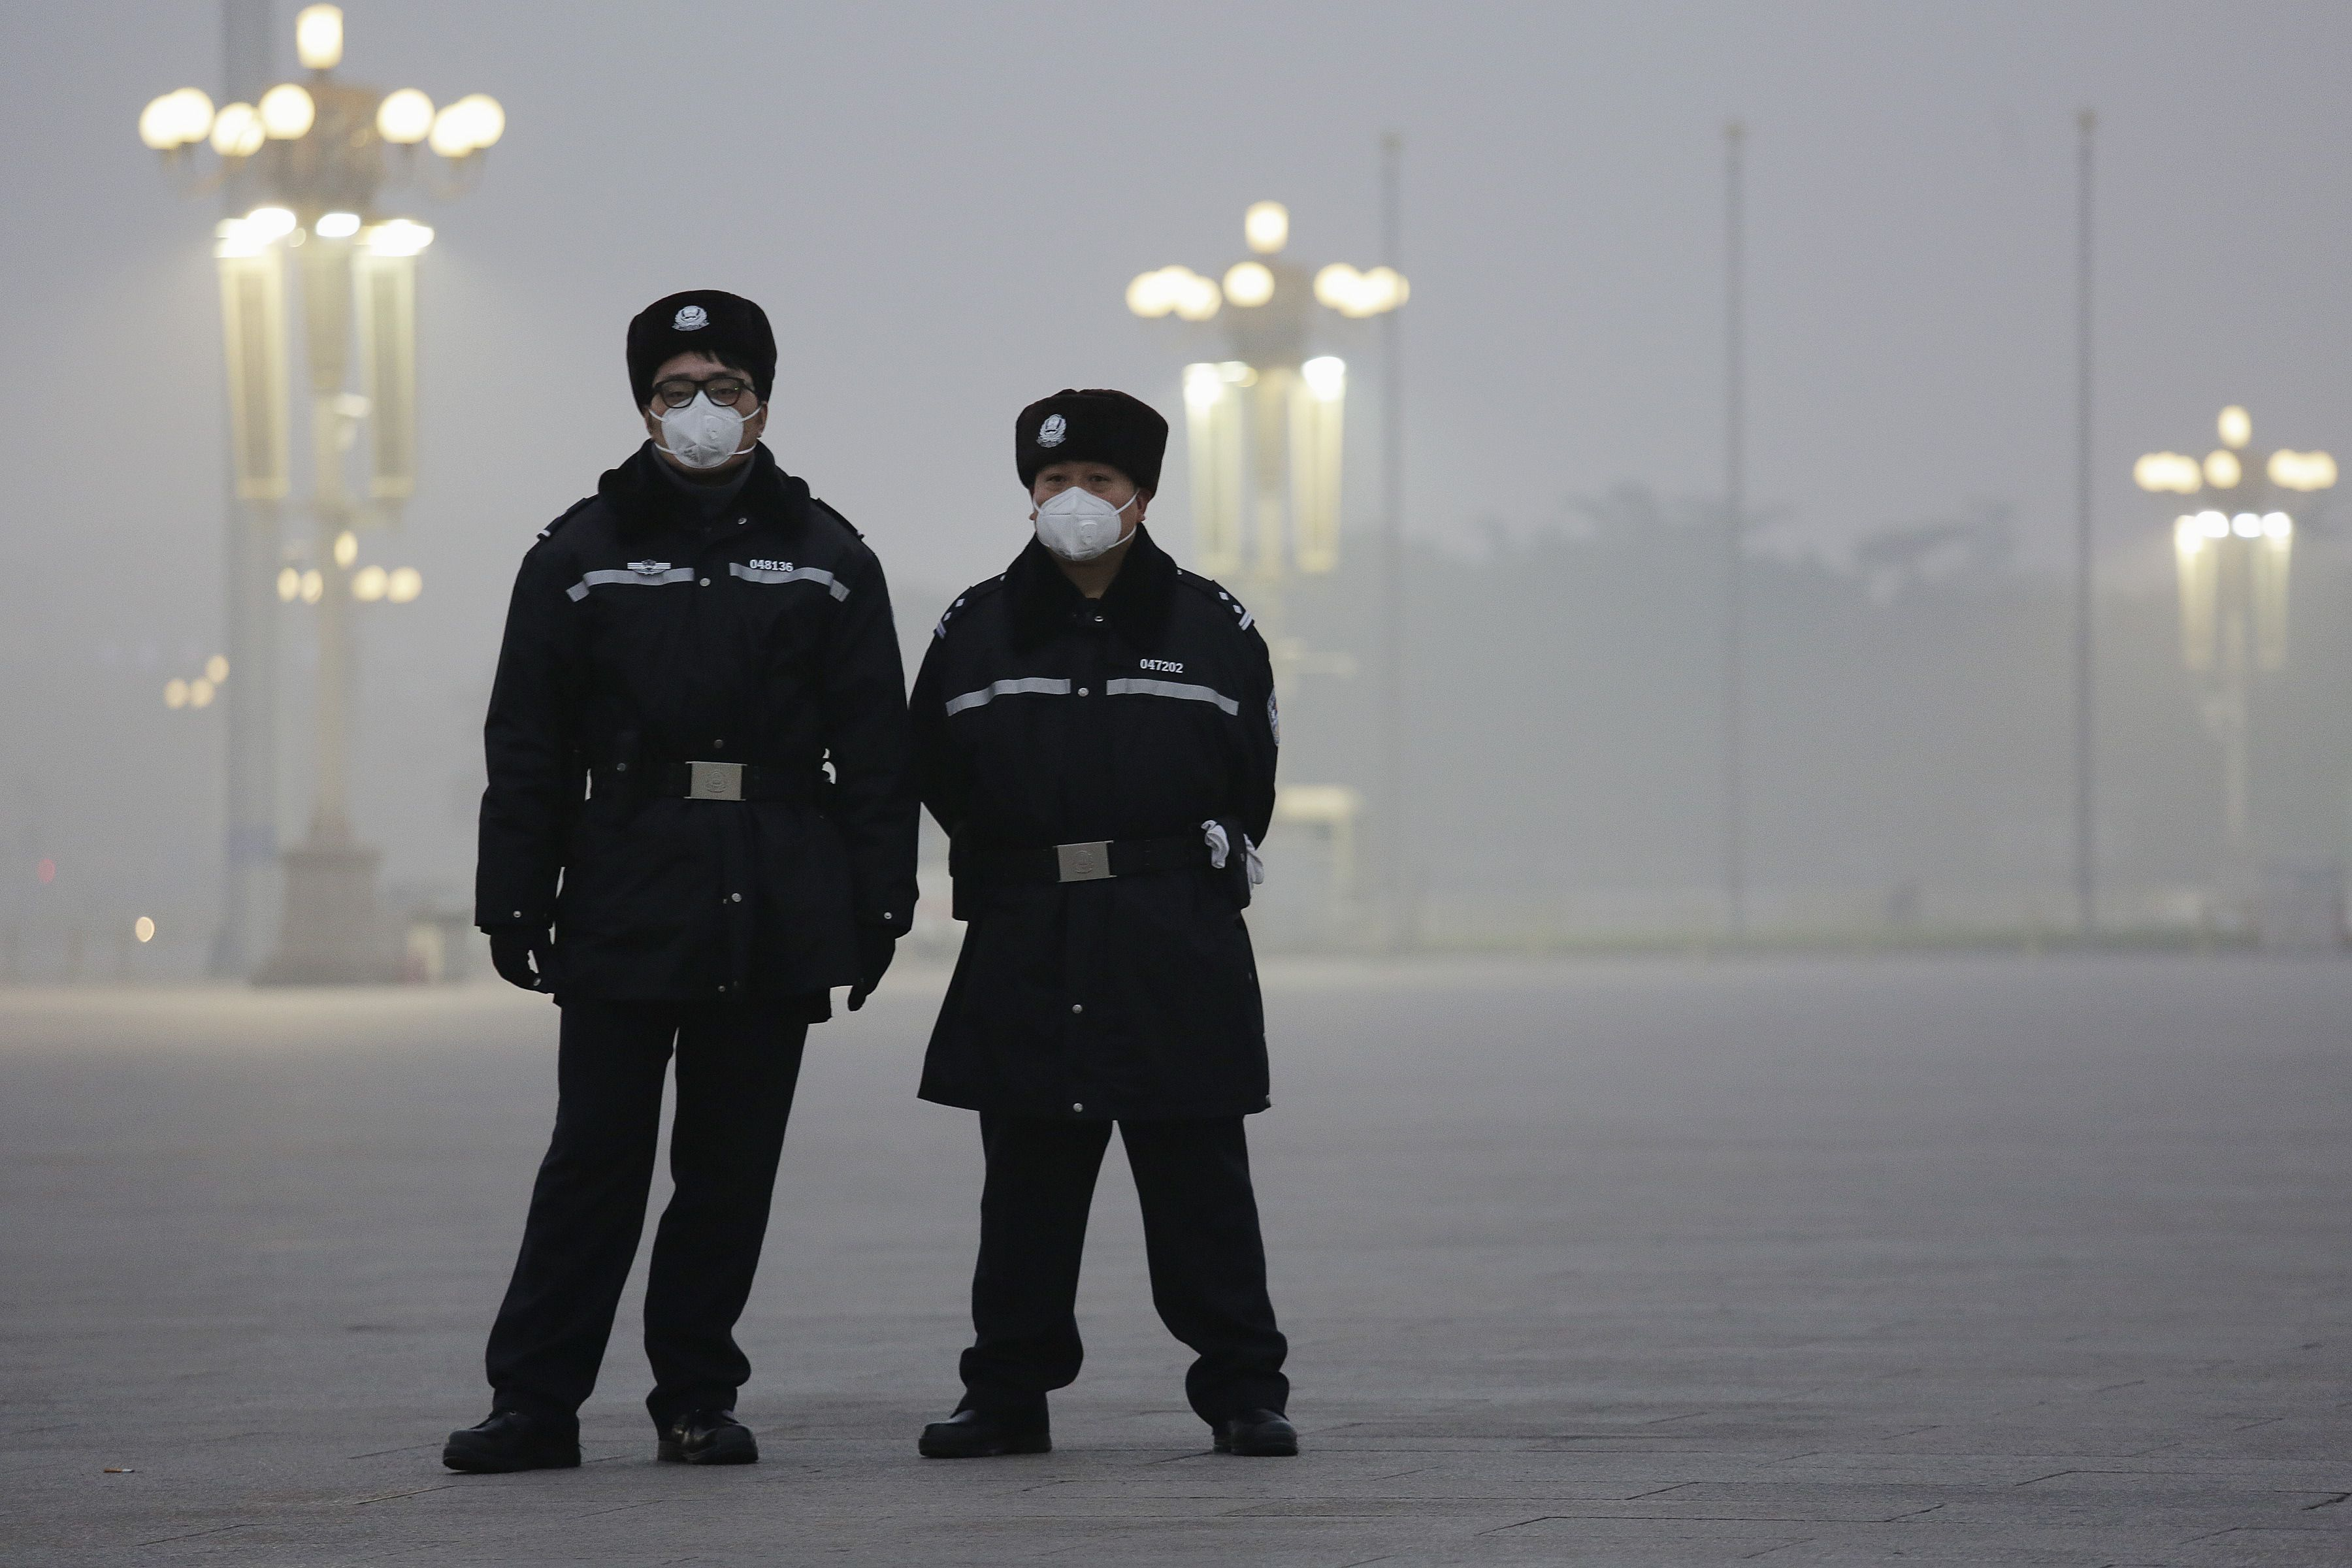 Policemen in protective masks at Tiananmen Square.